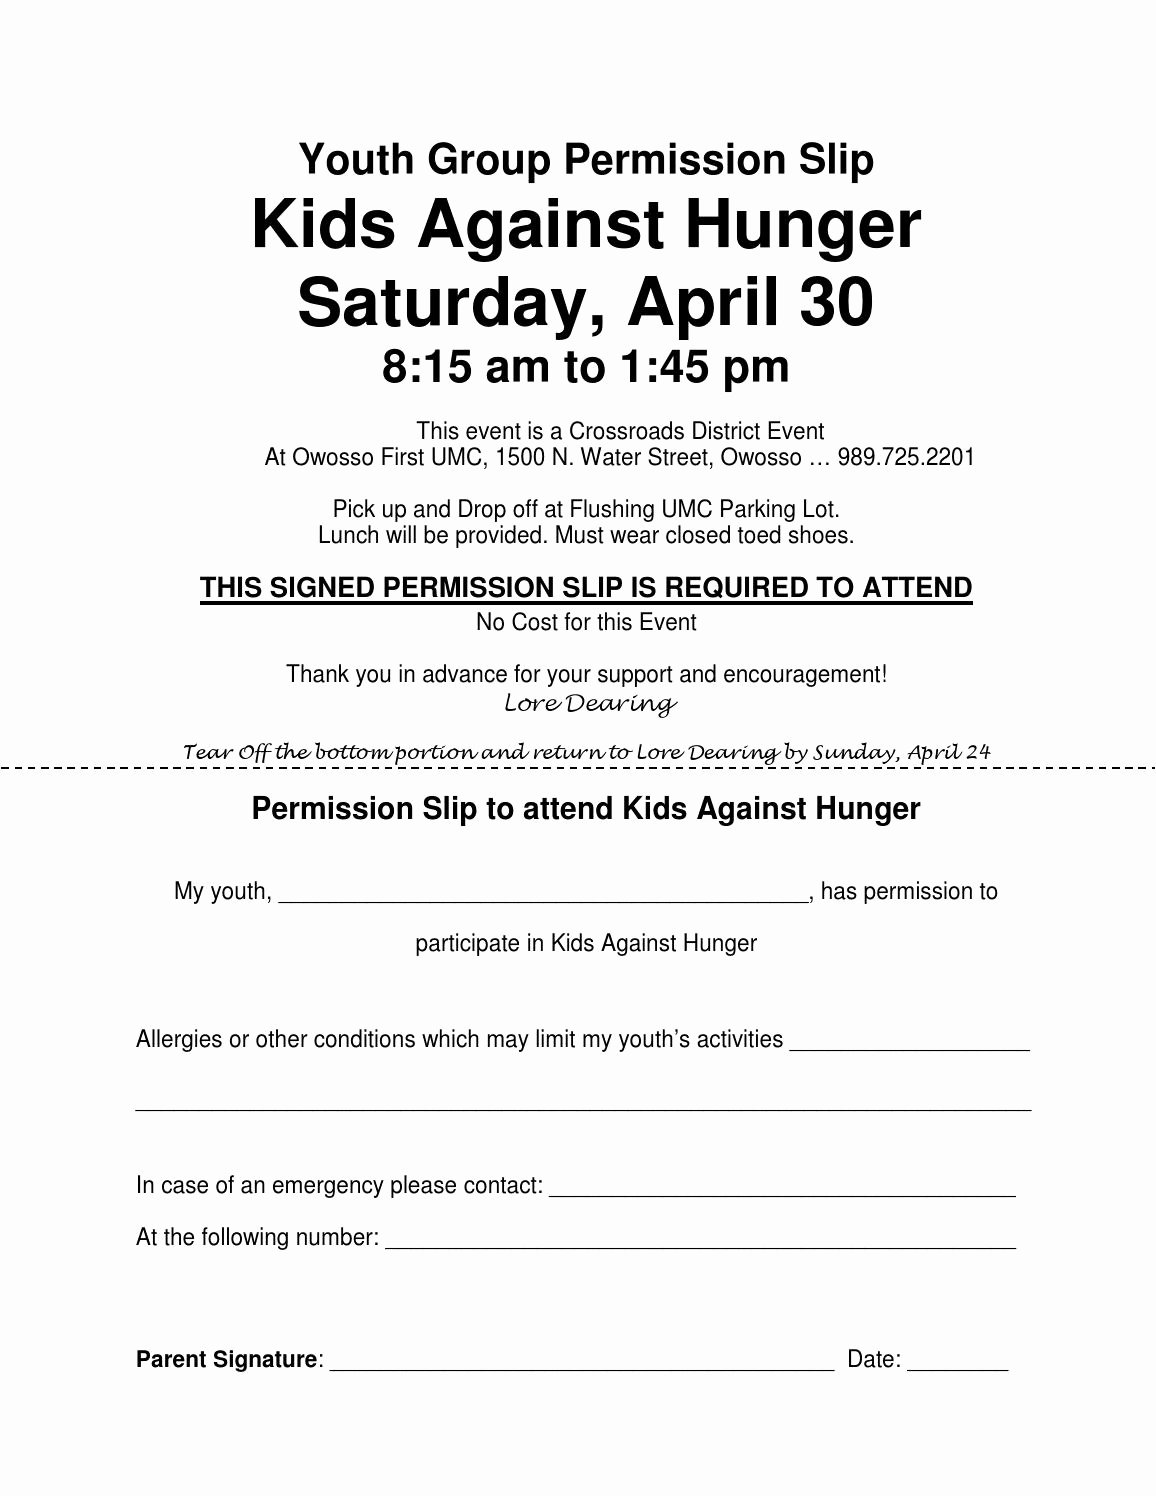 Youth Group Permission Slips New Youth Group Permission Slip Kids Against Hunger by